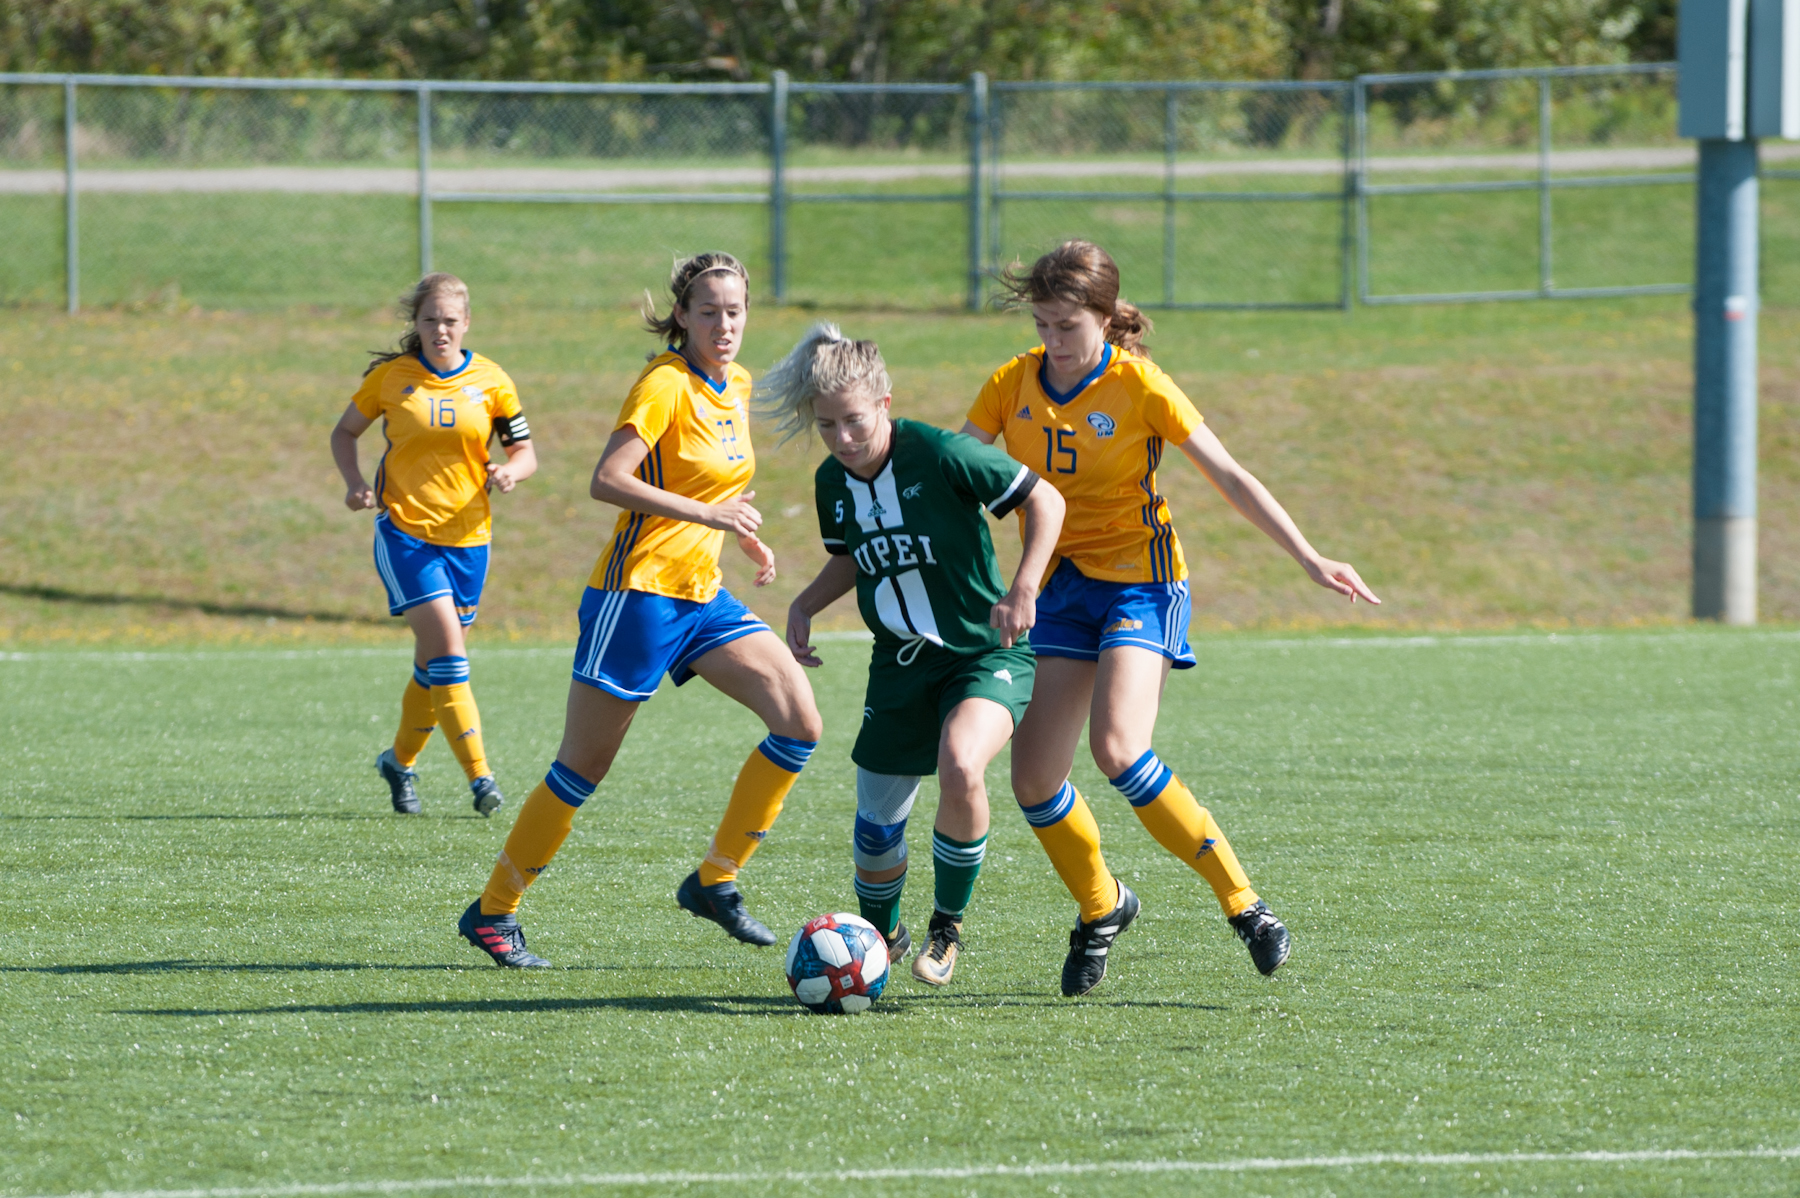 Rookie Brockbank leads Aigles Bleues past Panthers 2-1